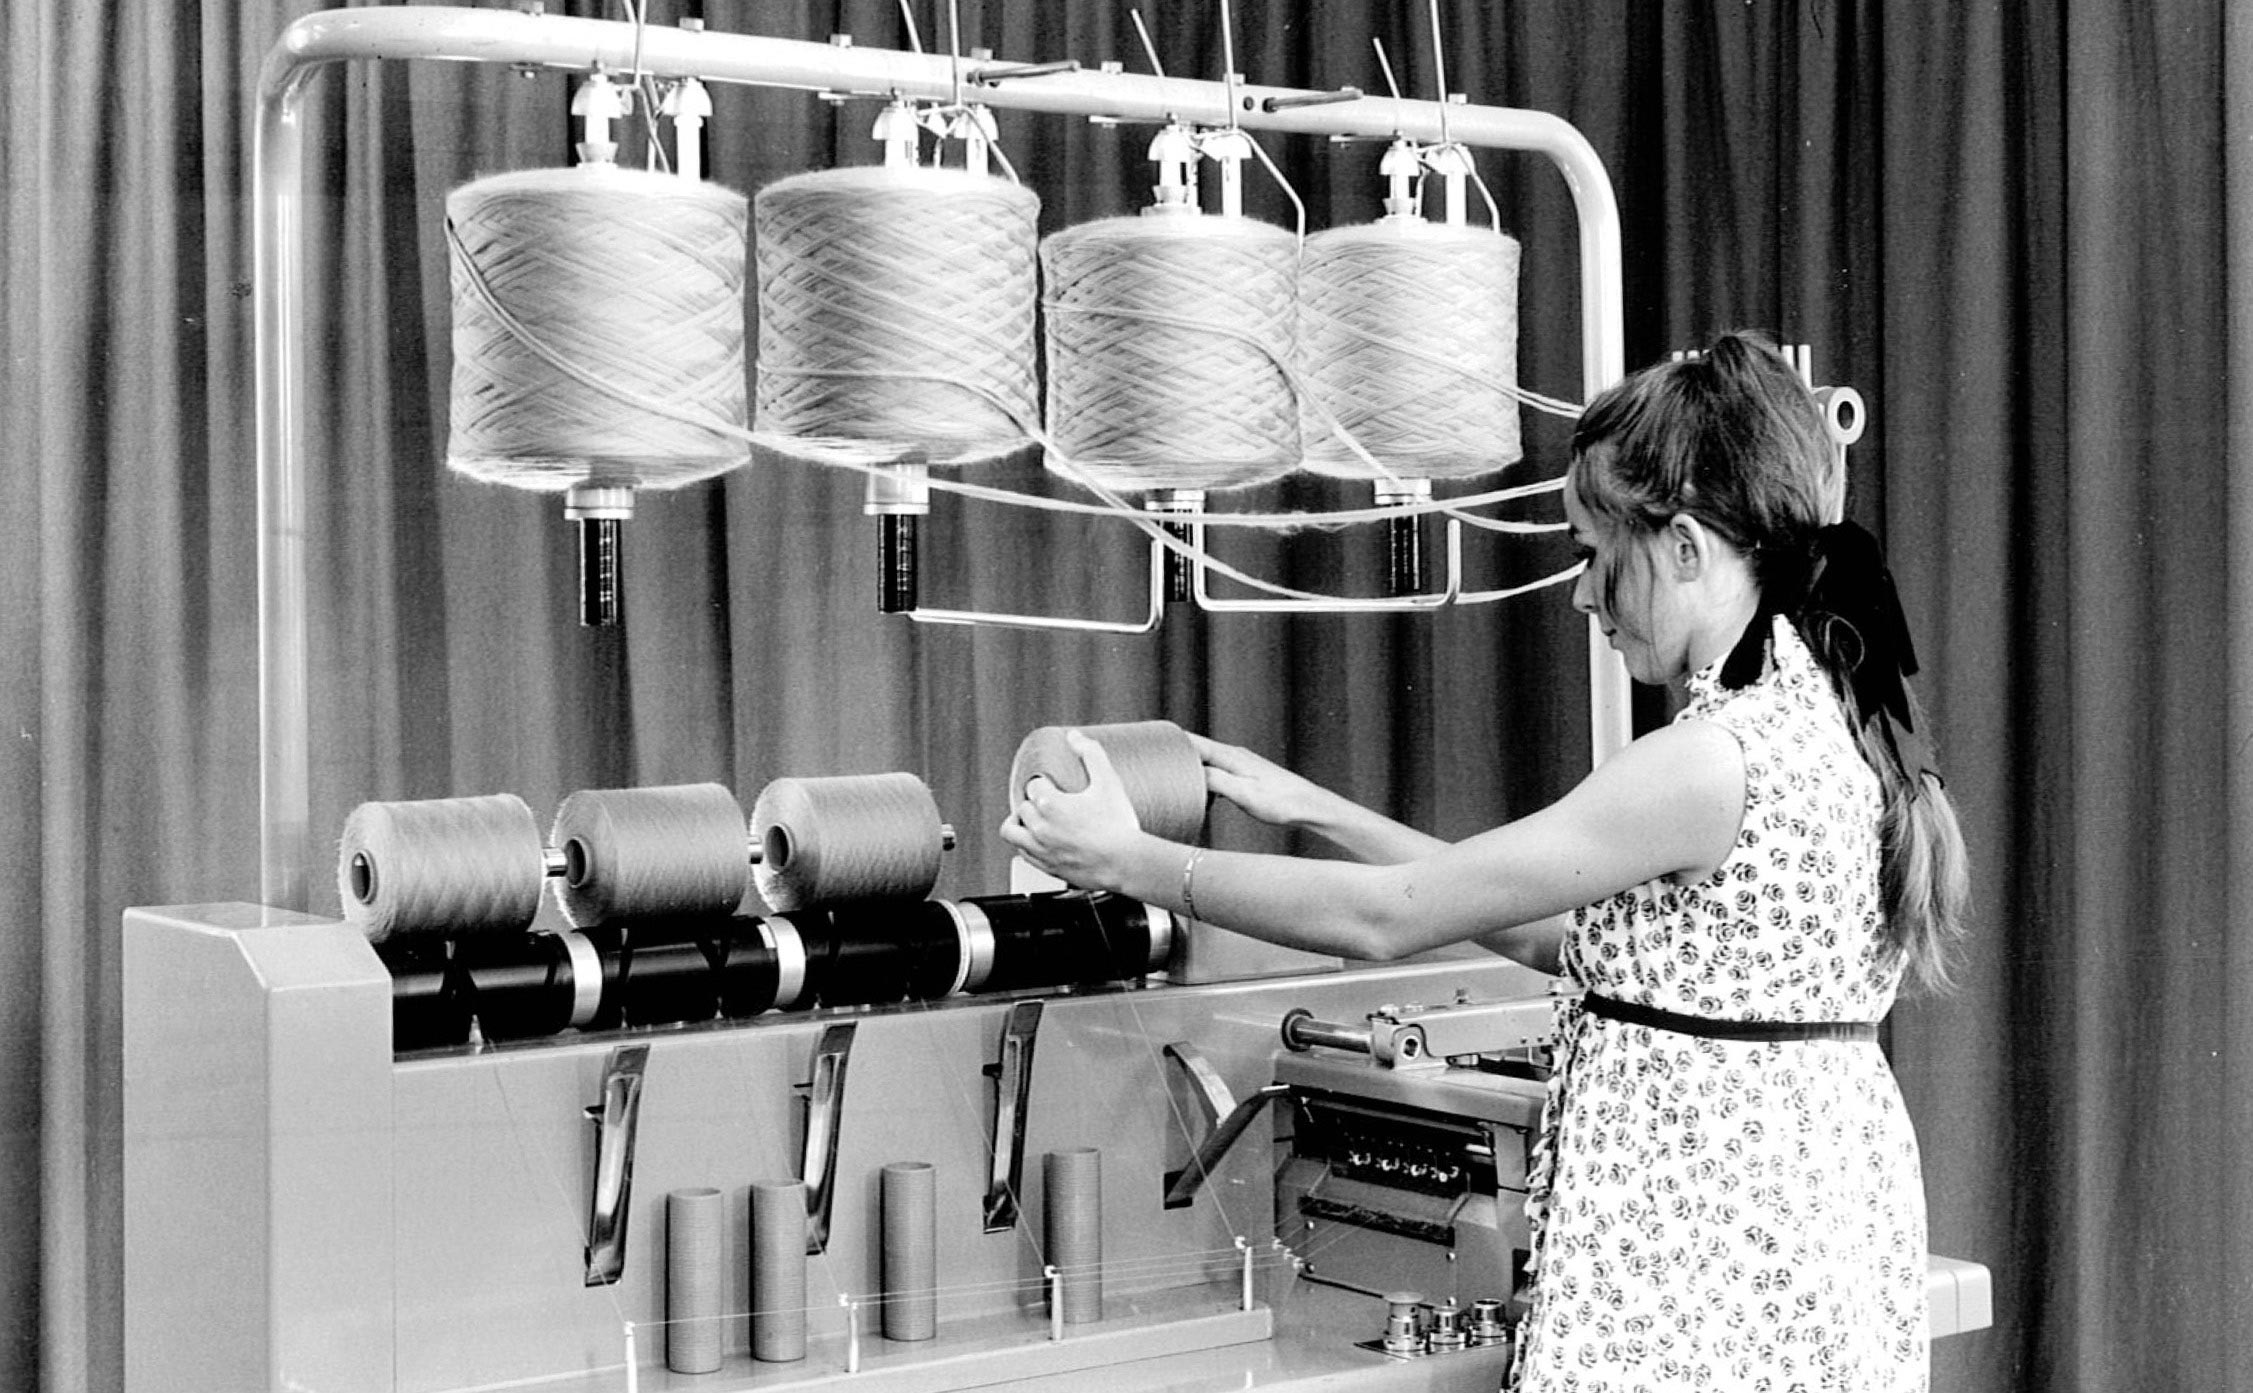 Woman standing in front of a self twisting yarn machine, black and white from the 1960s